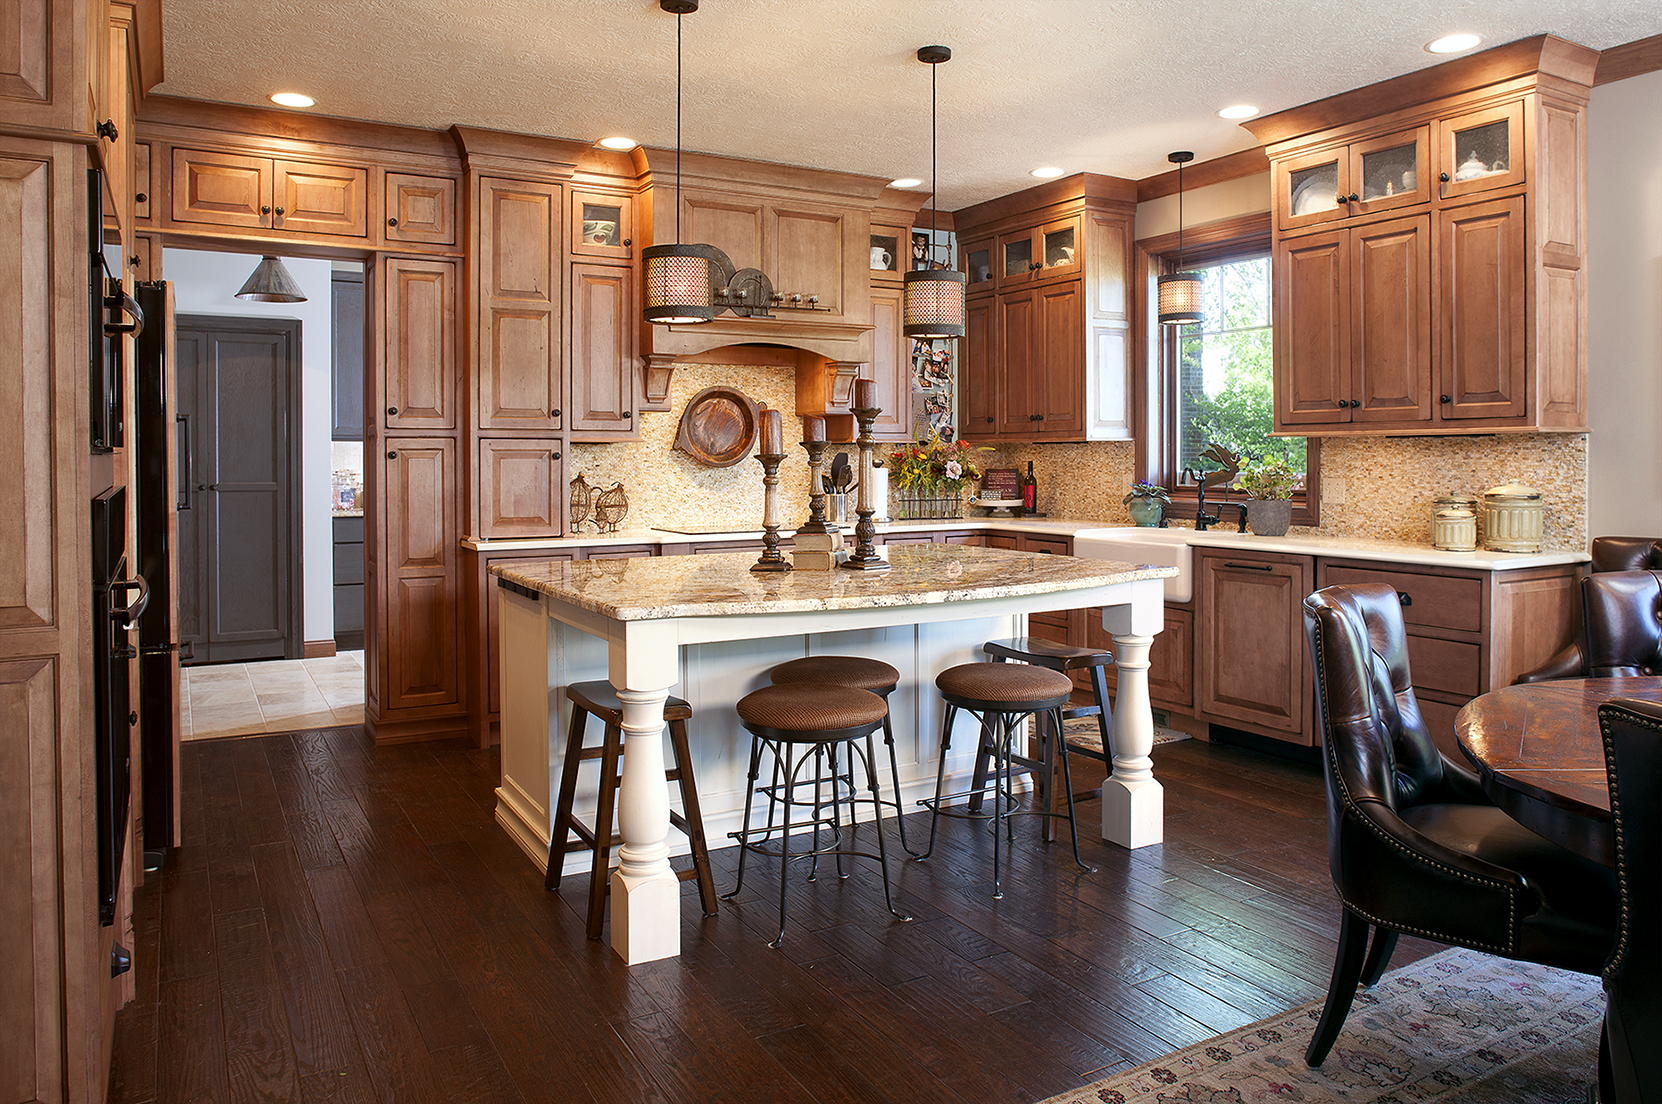 Stained kitchen cabinets in Vintage Nutmeg by Showplace Cabinetry - view 1